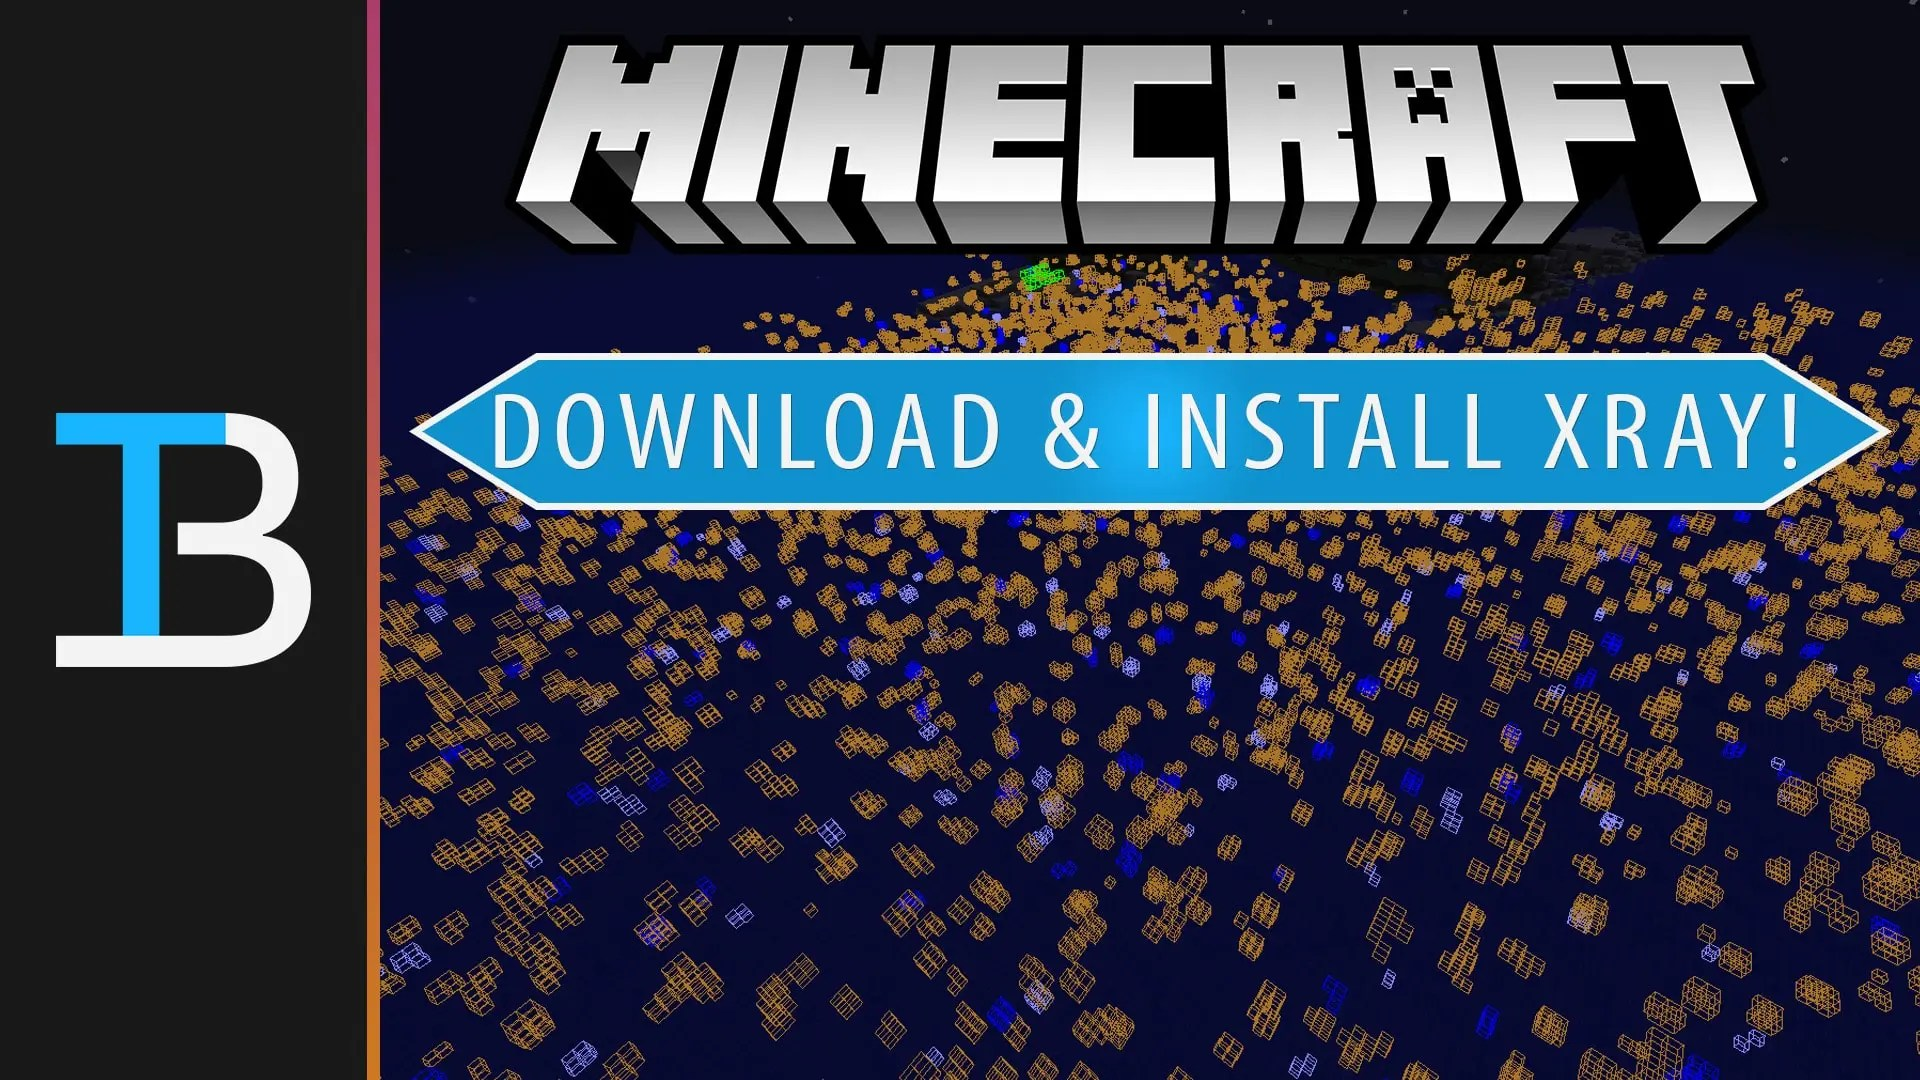 How To Download Install The XRay Mod in Minecraft - Free Game Hacks